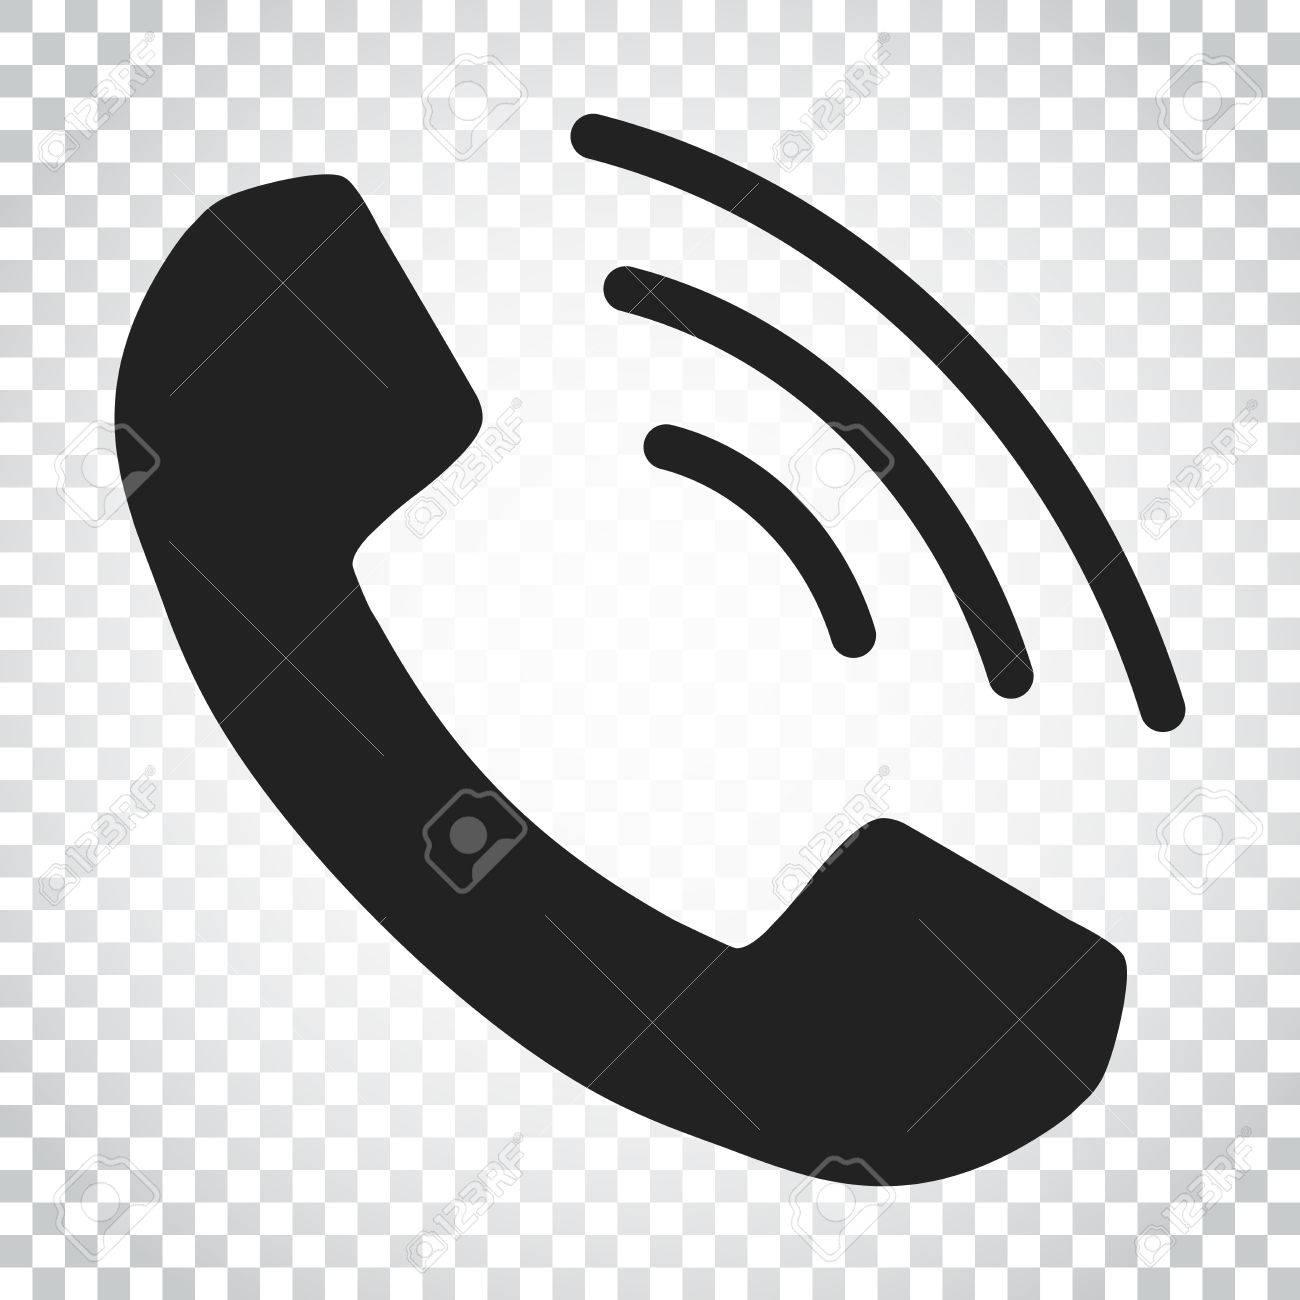 phone icon vector contact support service sign on isolated rh 123rf com phone icon vector free phone icon vector free